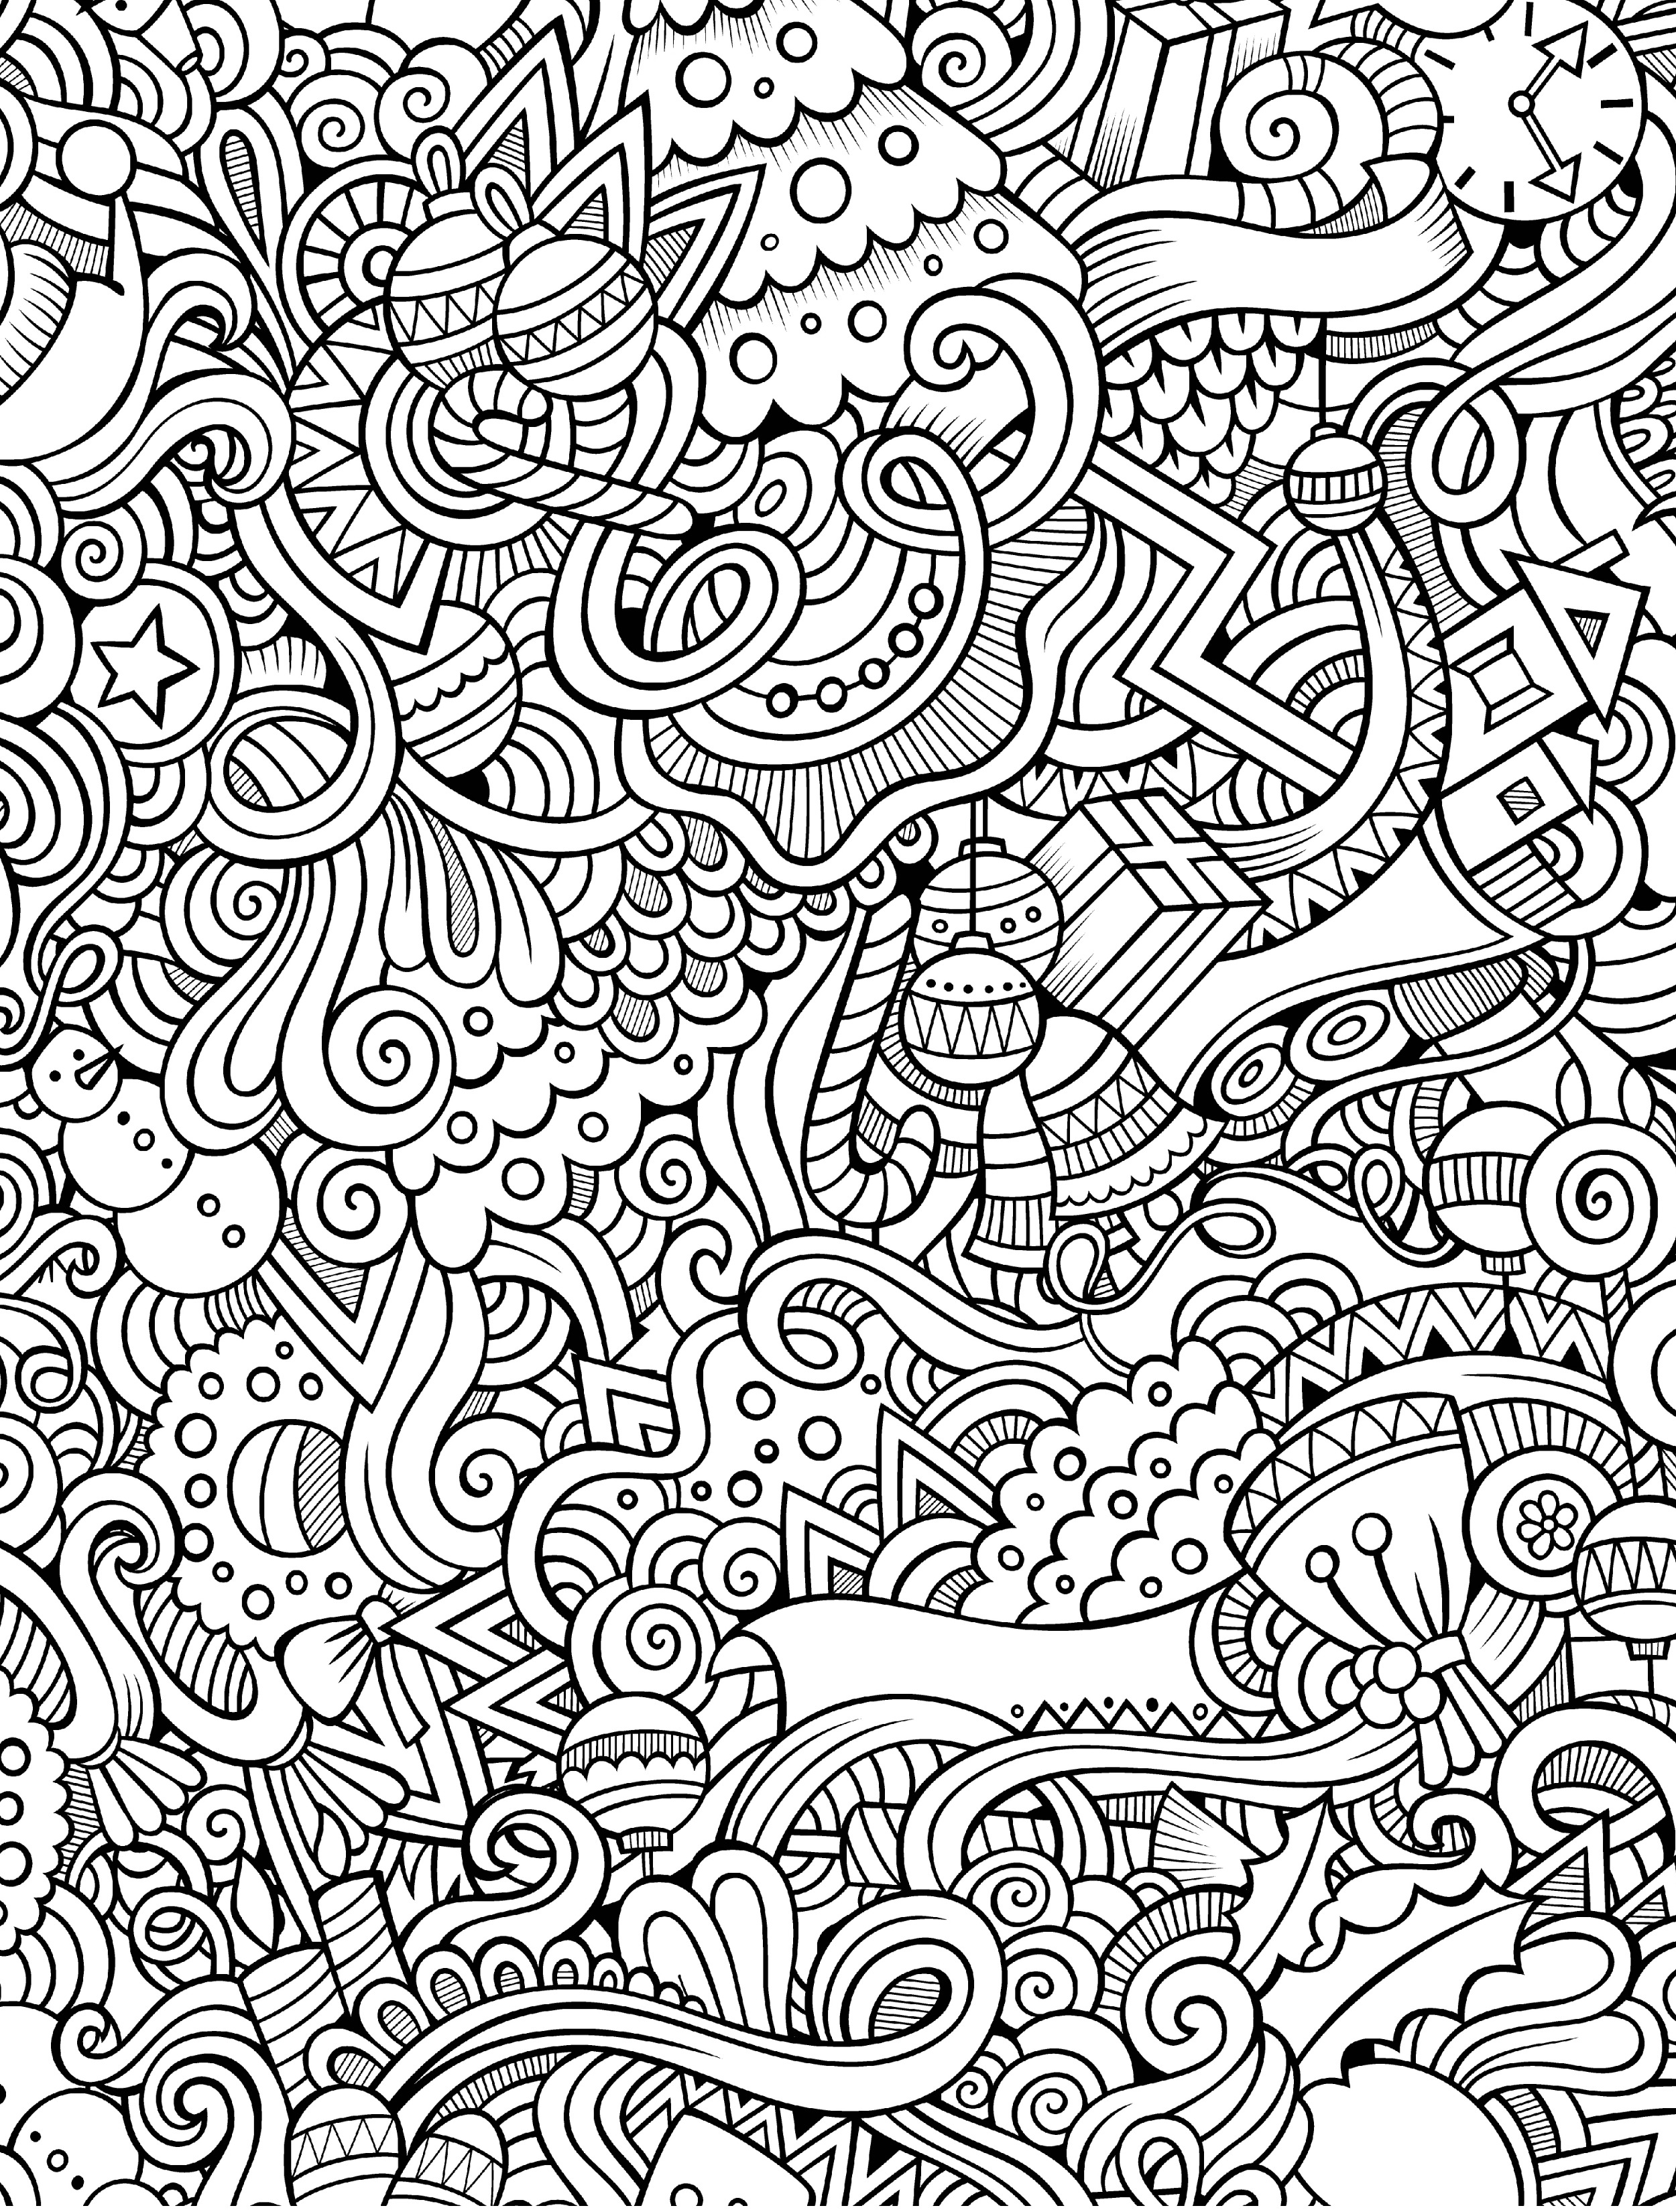 Santa Coloring Book Pdf With 10 Free Printable Holiday Adult Pages